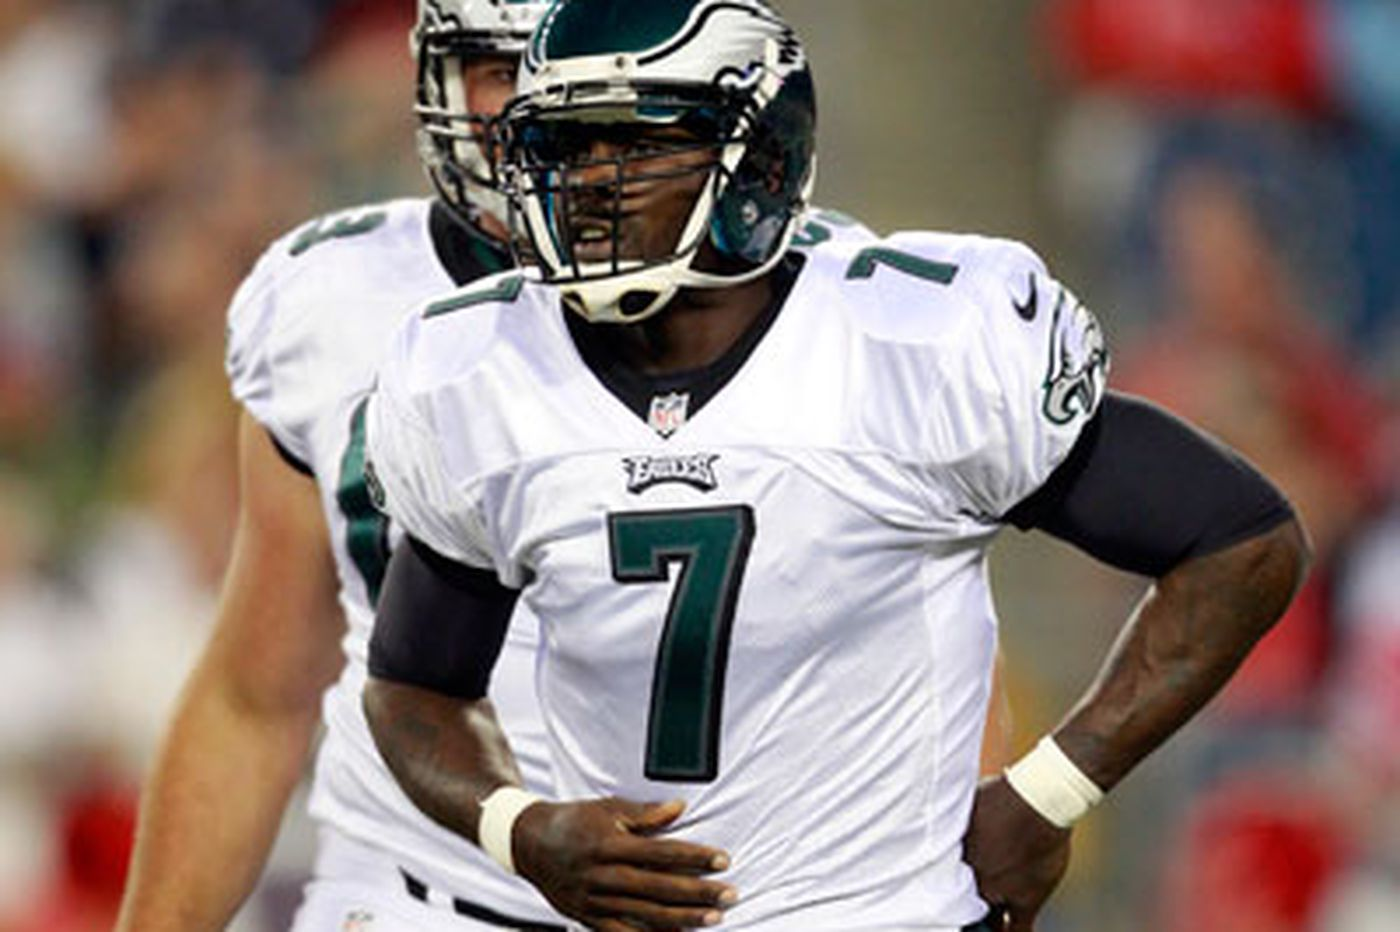 Eagles Notes: The Eagles get good news on Michael Vick's rib injury